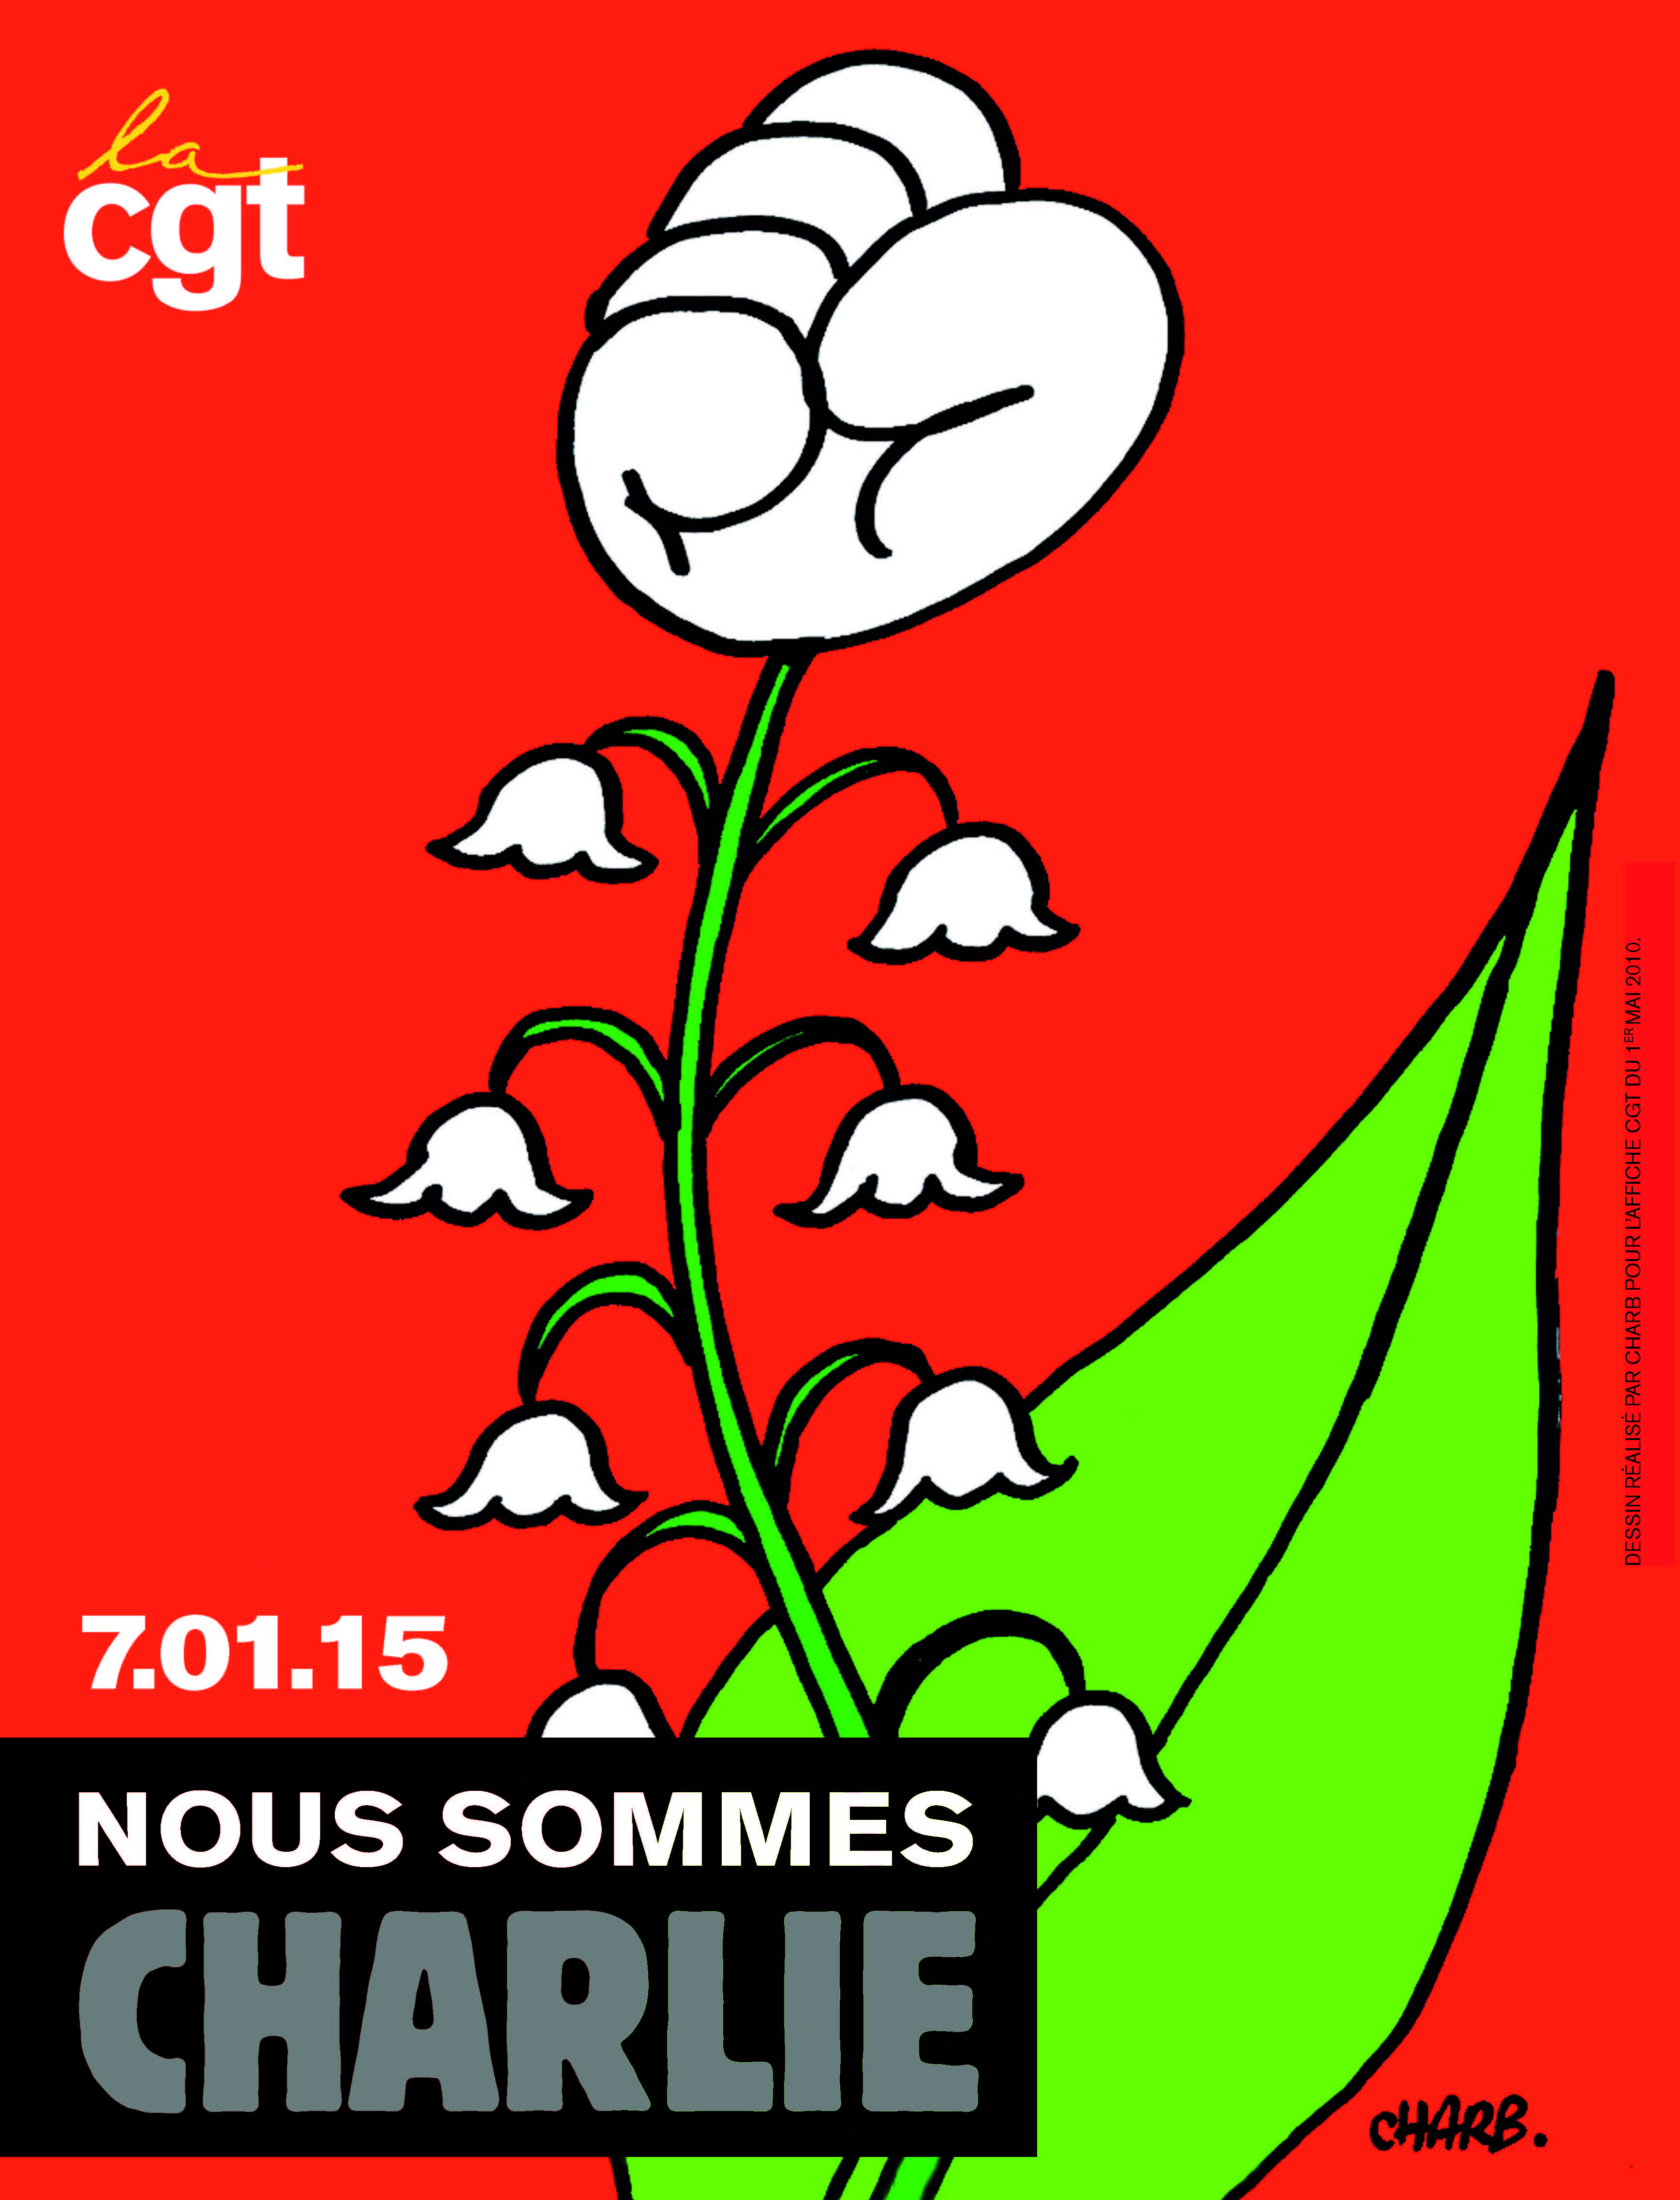 Cgt Nous sommes Charlie